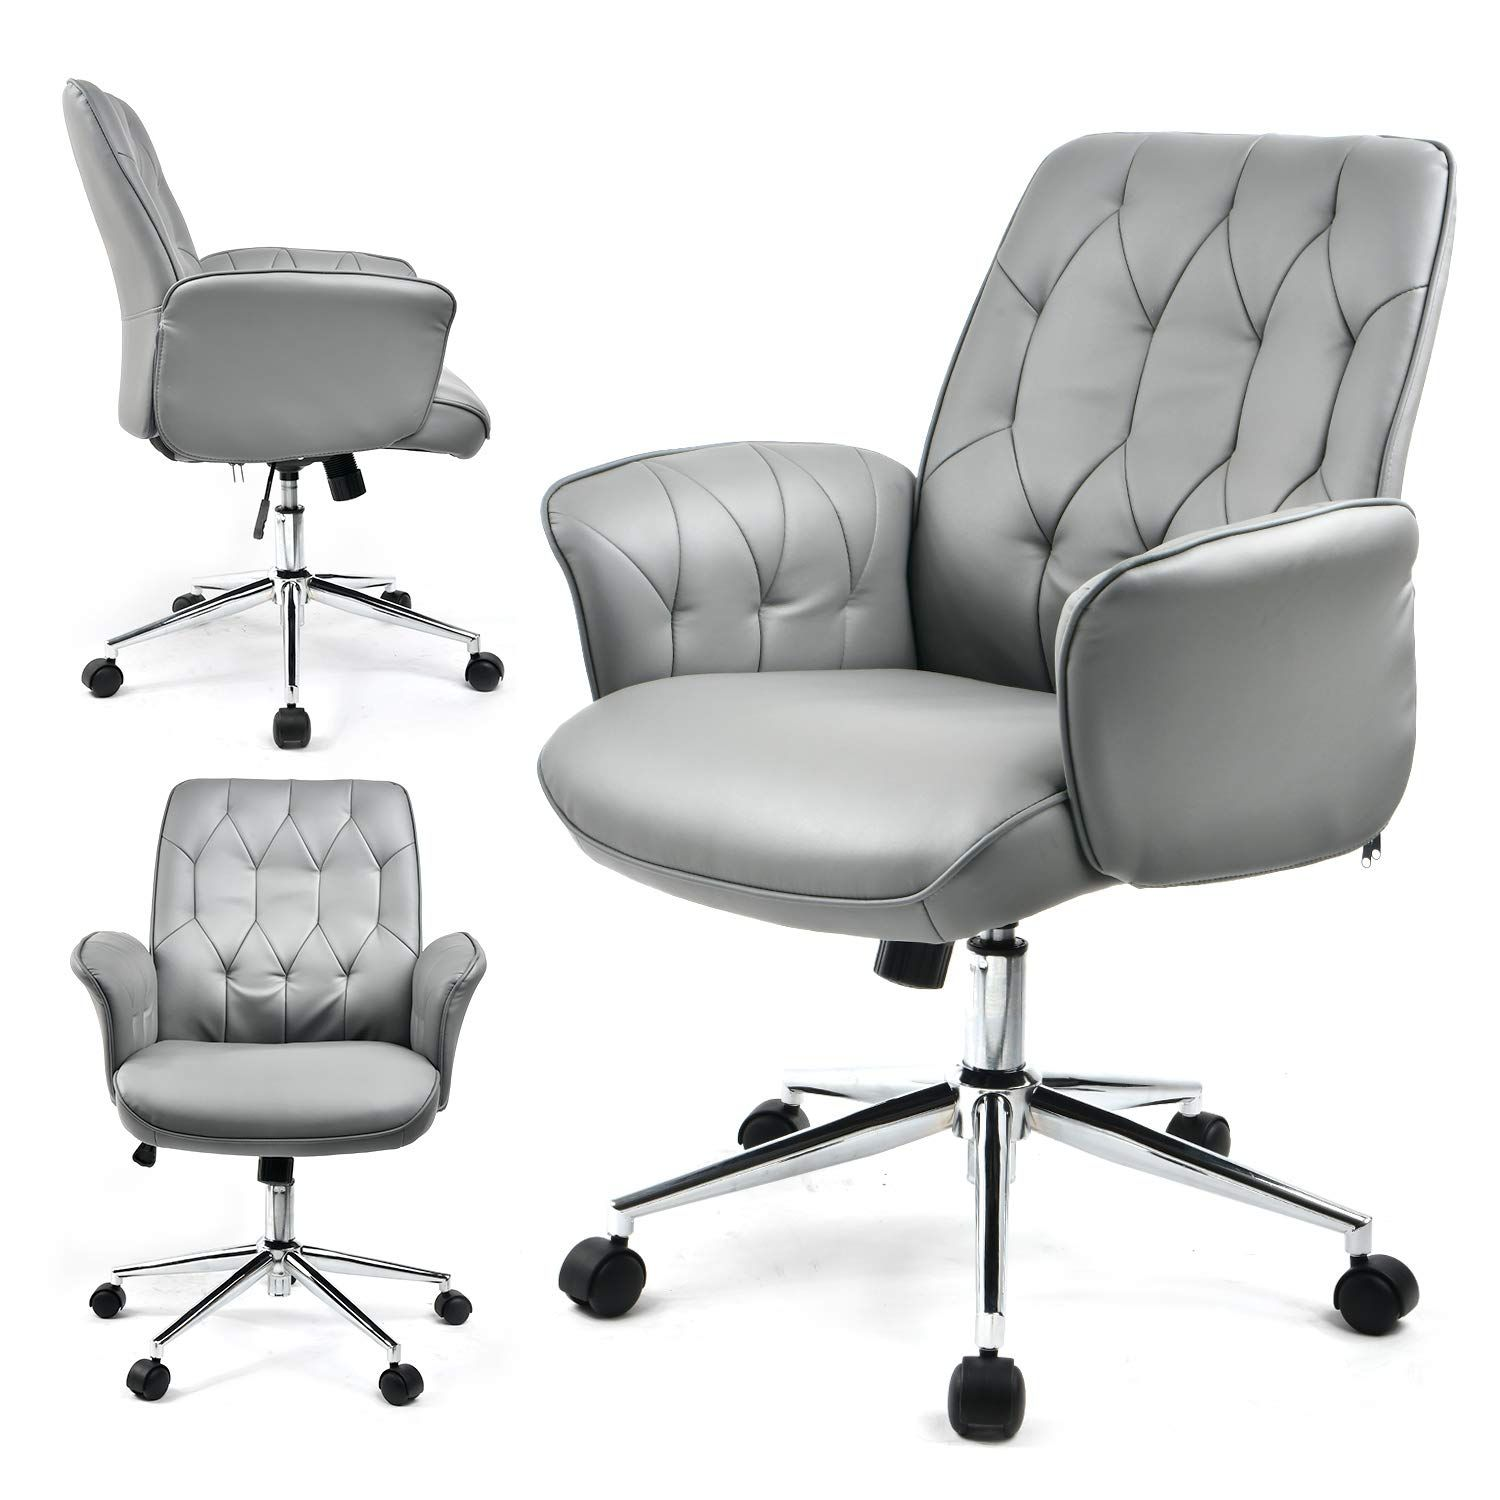 COMHOMA Modern Home Office Chair Vegan Leather Upholstered